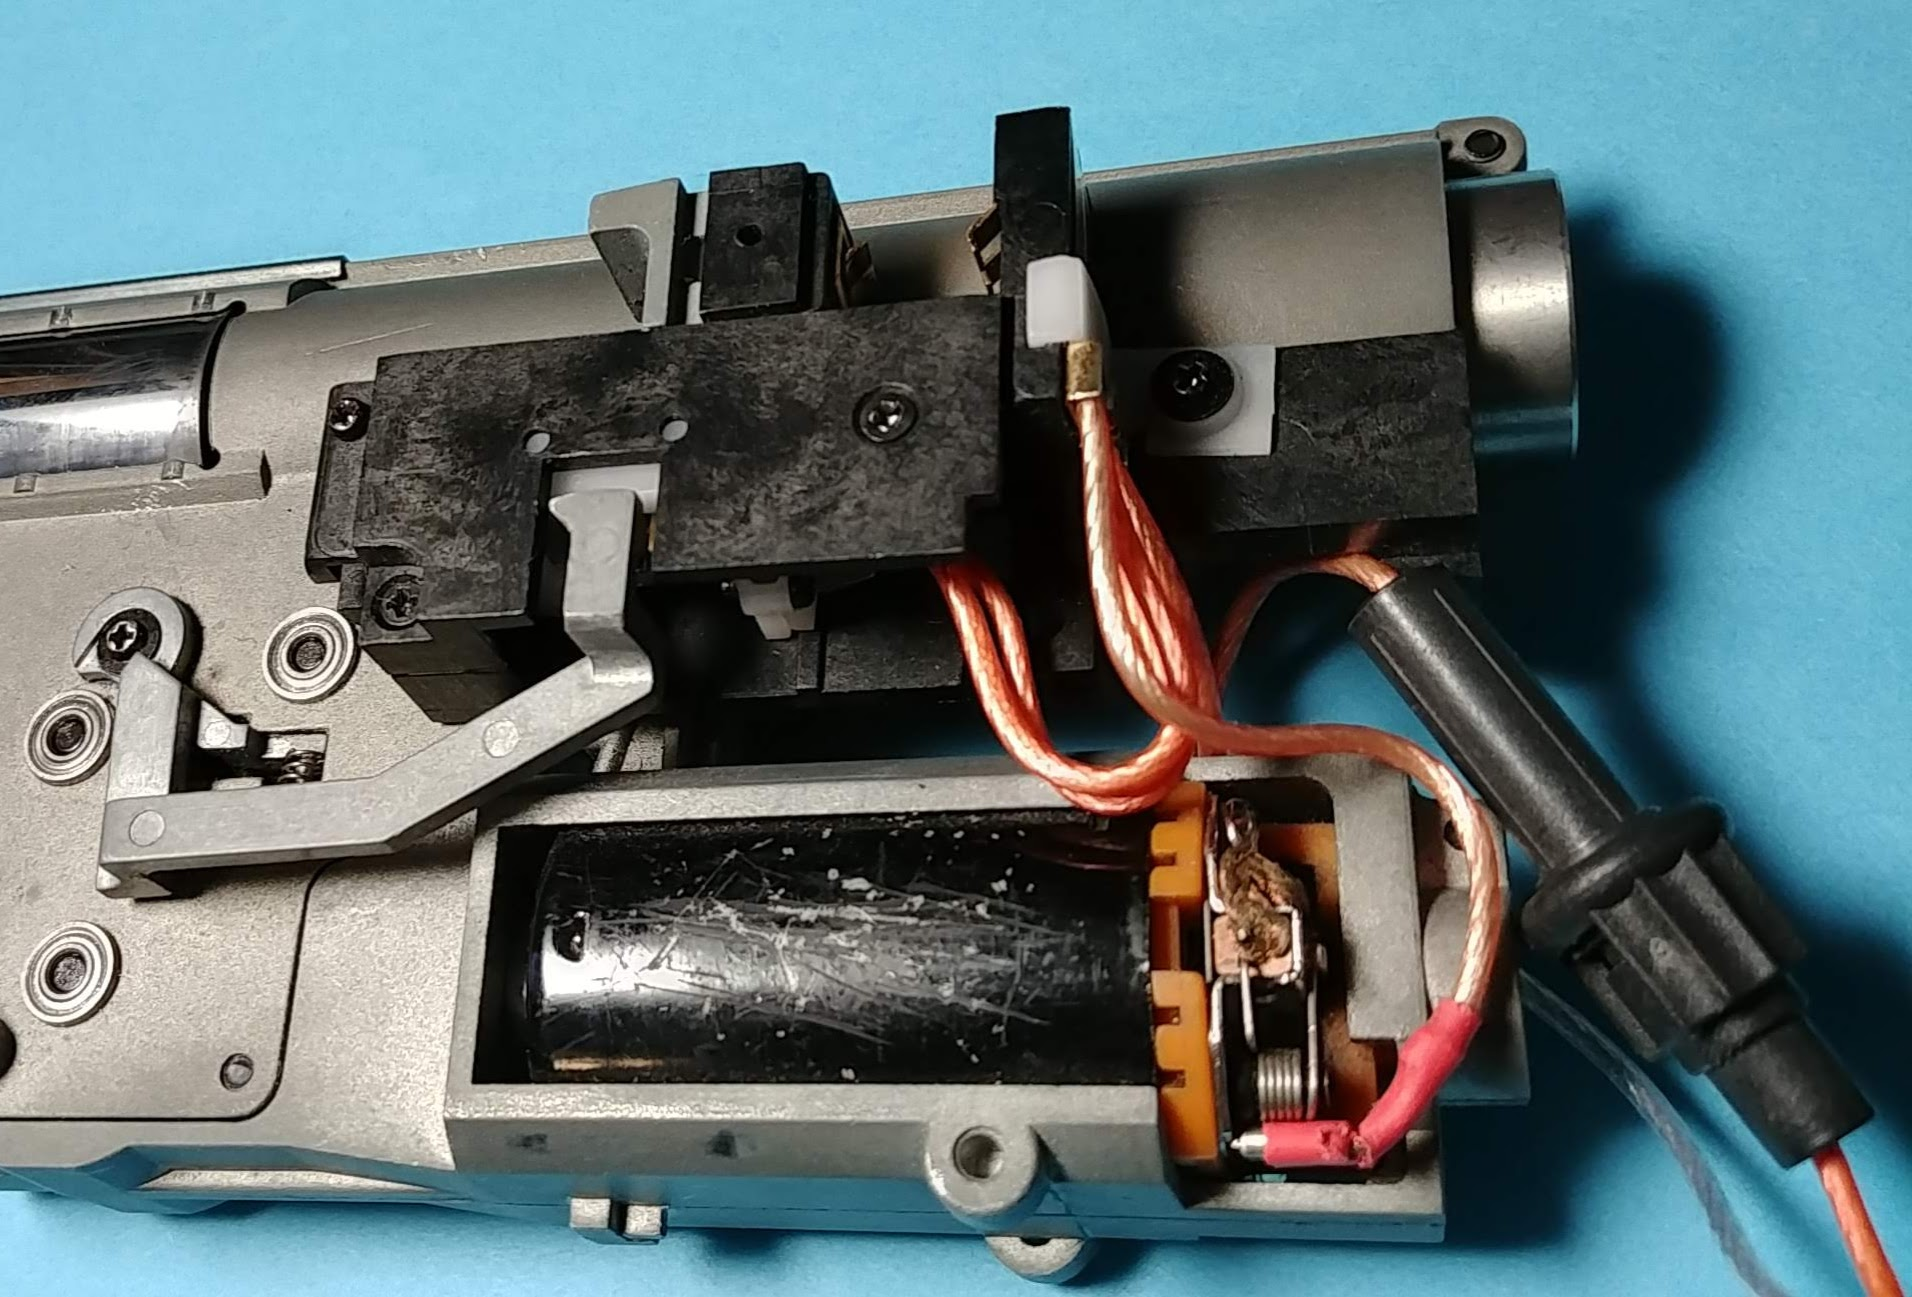 Gearbox out of the gun